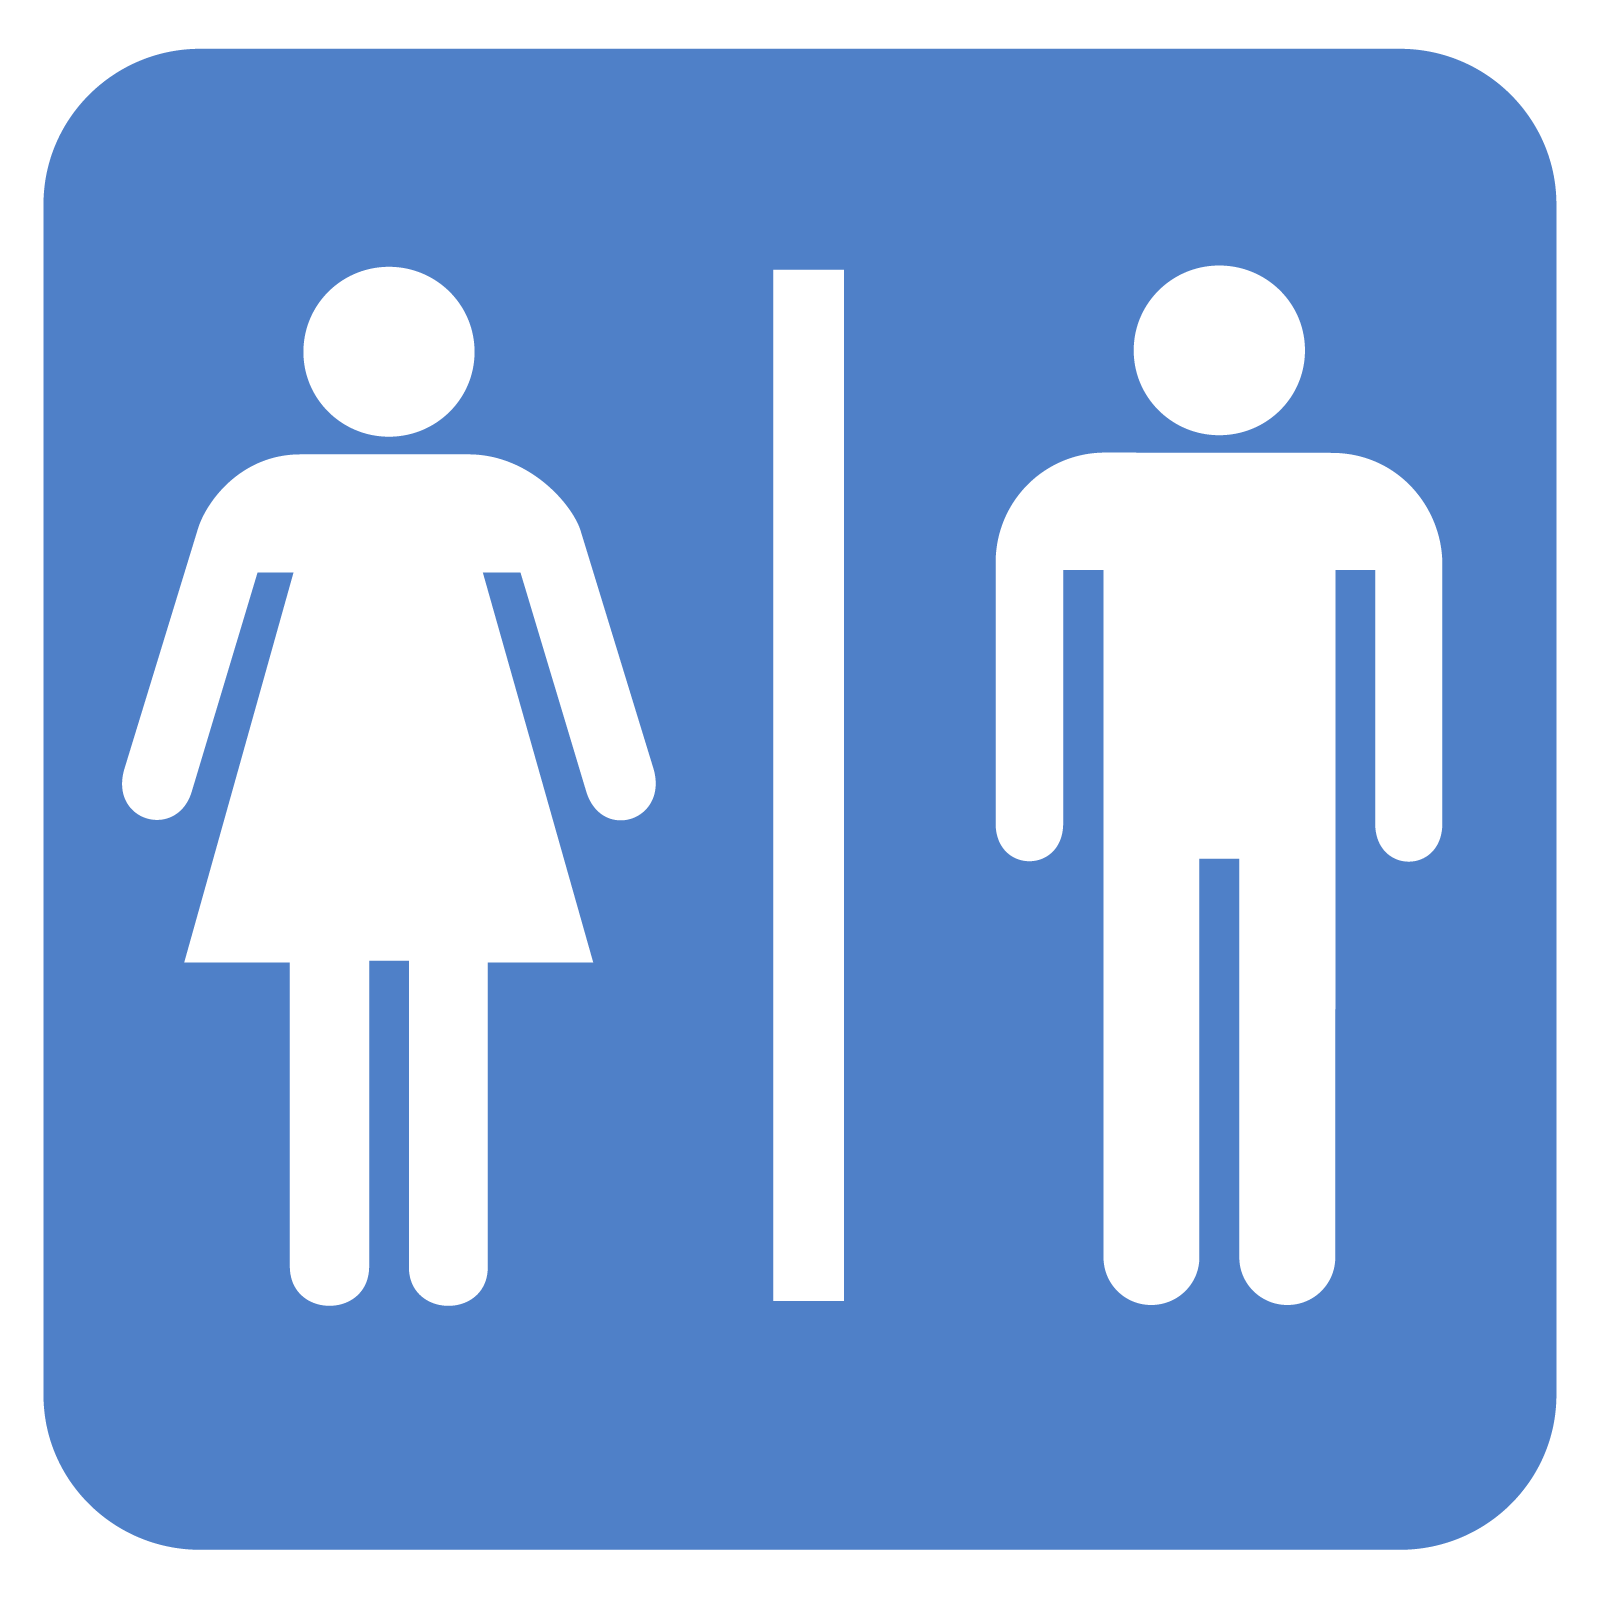 Free clipart restroom signs image free stock Free Free Printable Restroom Signs, Download Free Clip Art, Free ... image free stock